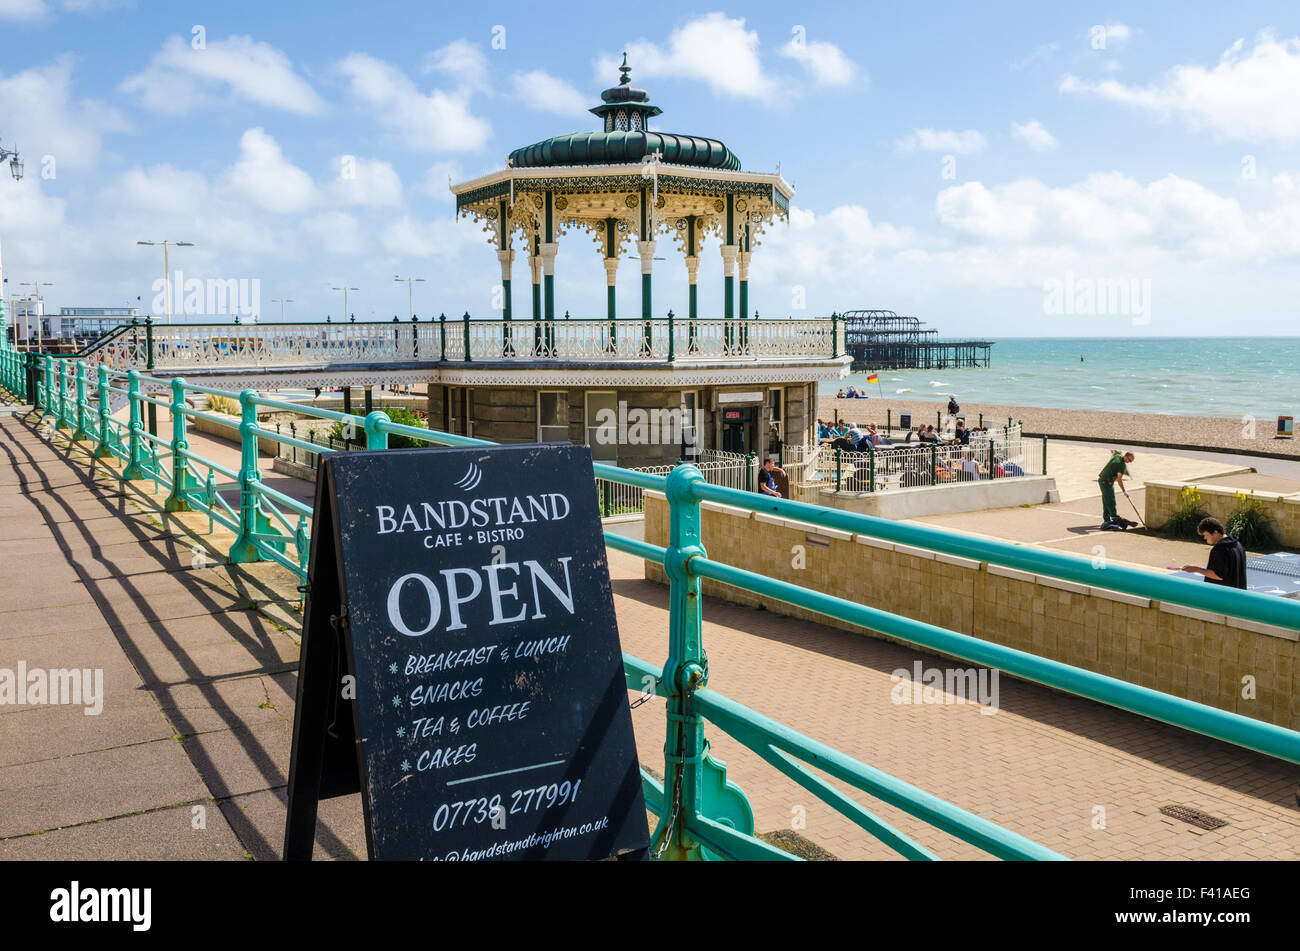 The Bandstand and cafe on the Brighton and Hove seafront in summer, East Sussex, England. - Stock Image